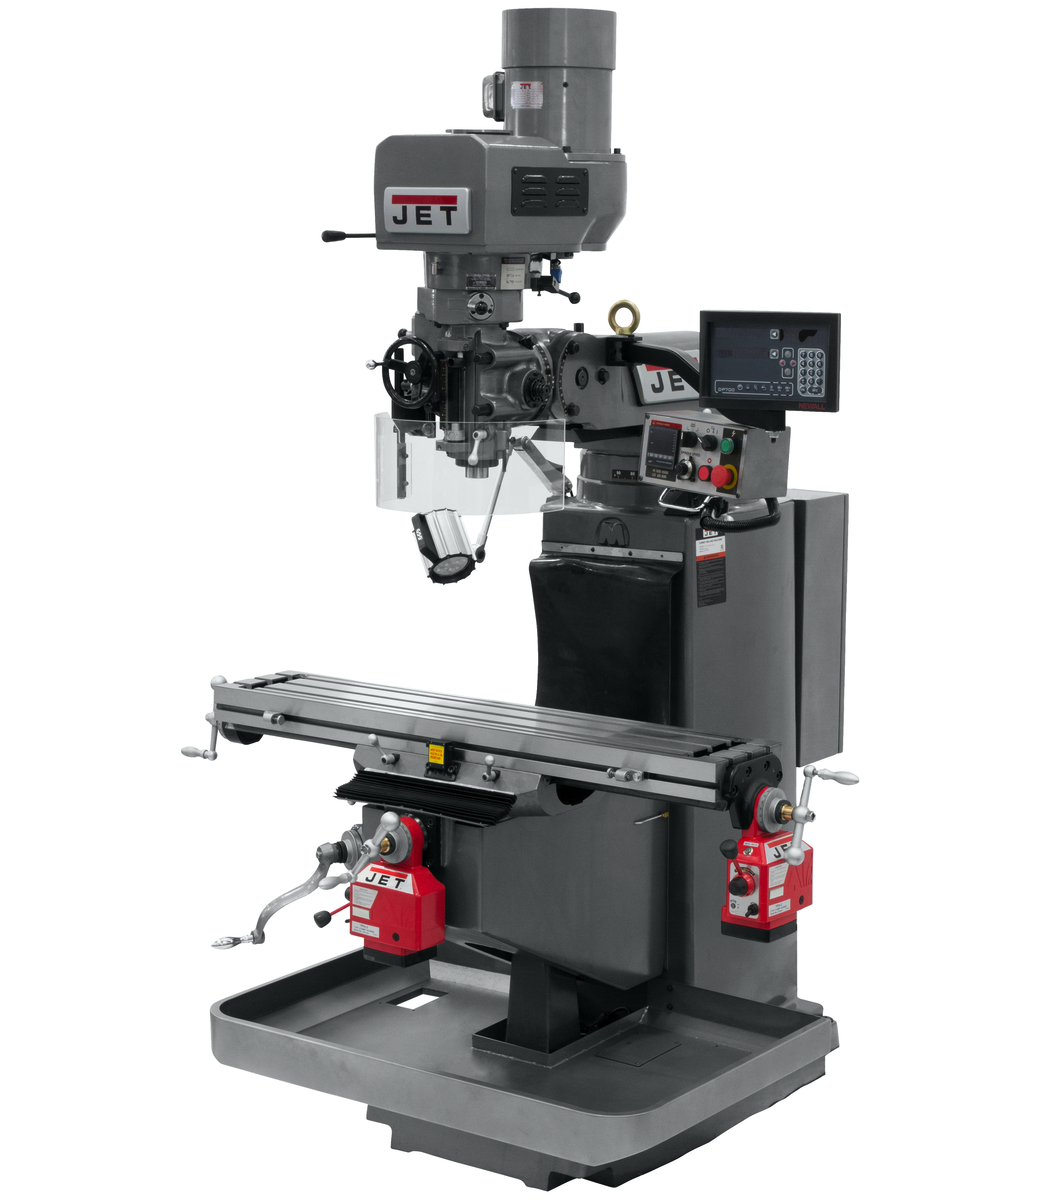 JTM-949EVS with Newall DP700 DRO, X & Y Powerfeeds